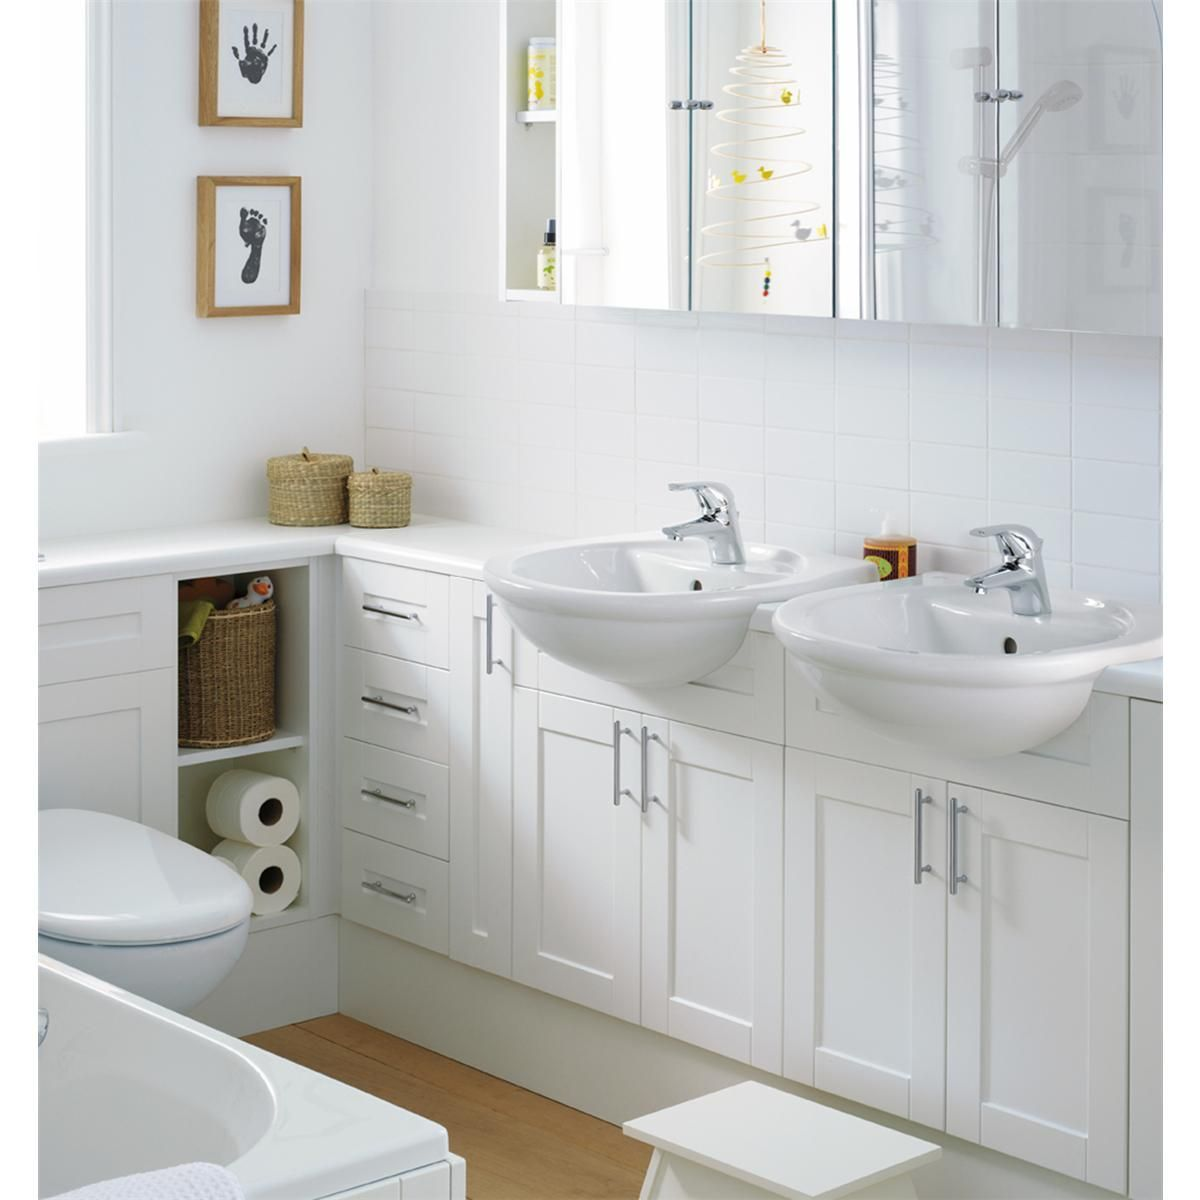 Small White Ikea Bathroom Vanity Units Bathroom Storage ...